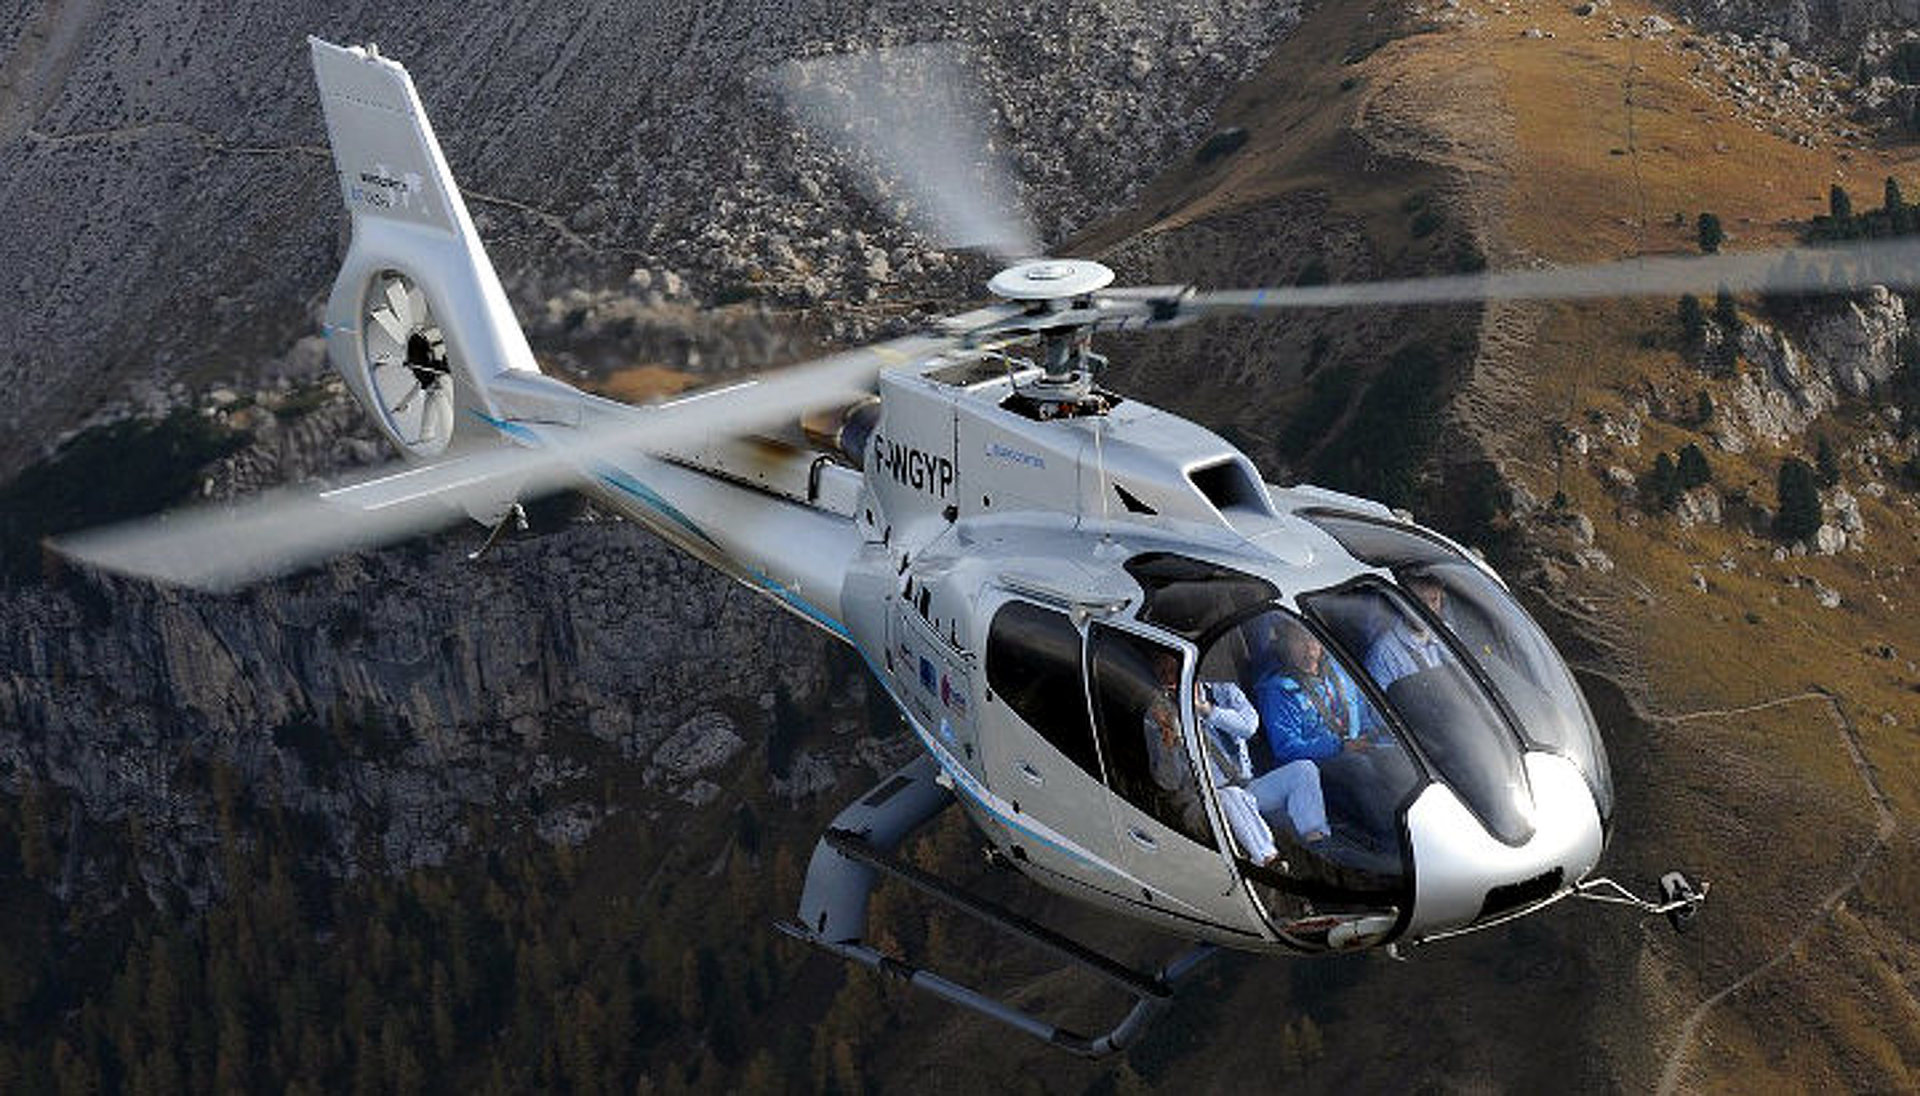 Uber and Airbus Teaming Up to Provide On-Demand Helicopter Flights at Sundance Film Festival